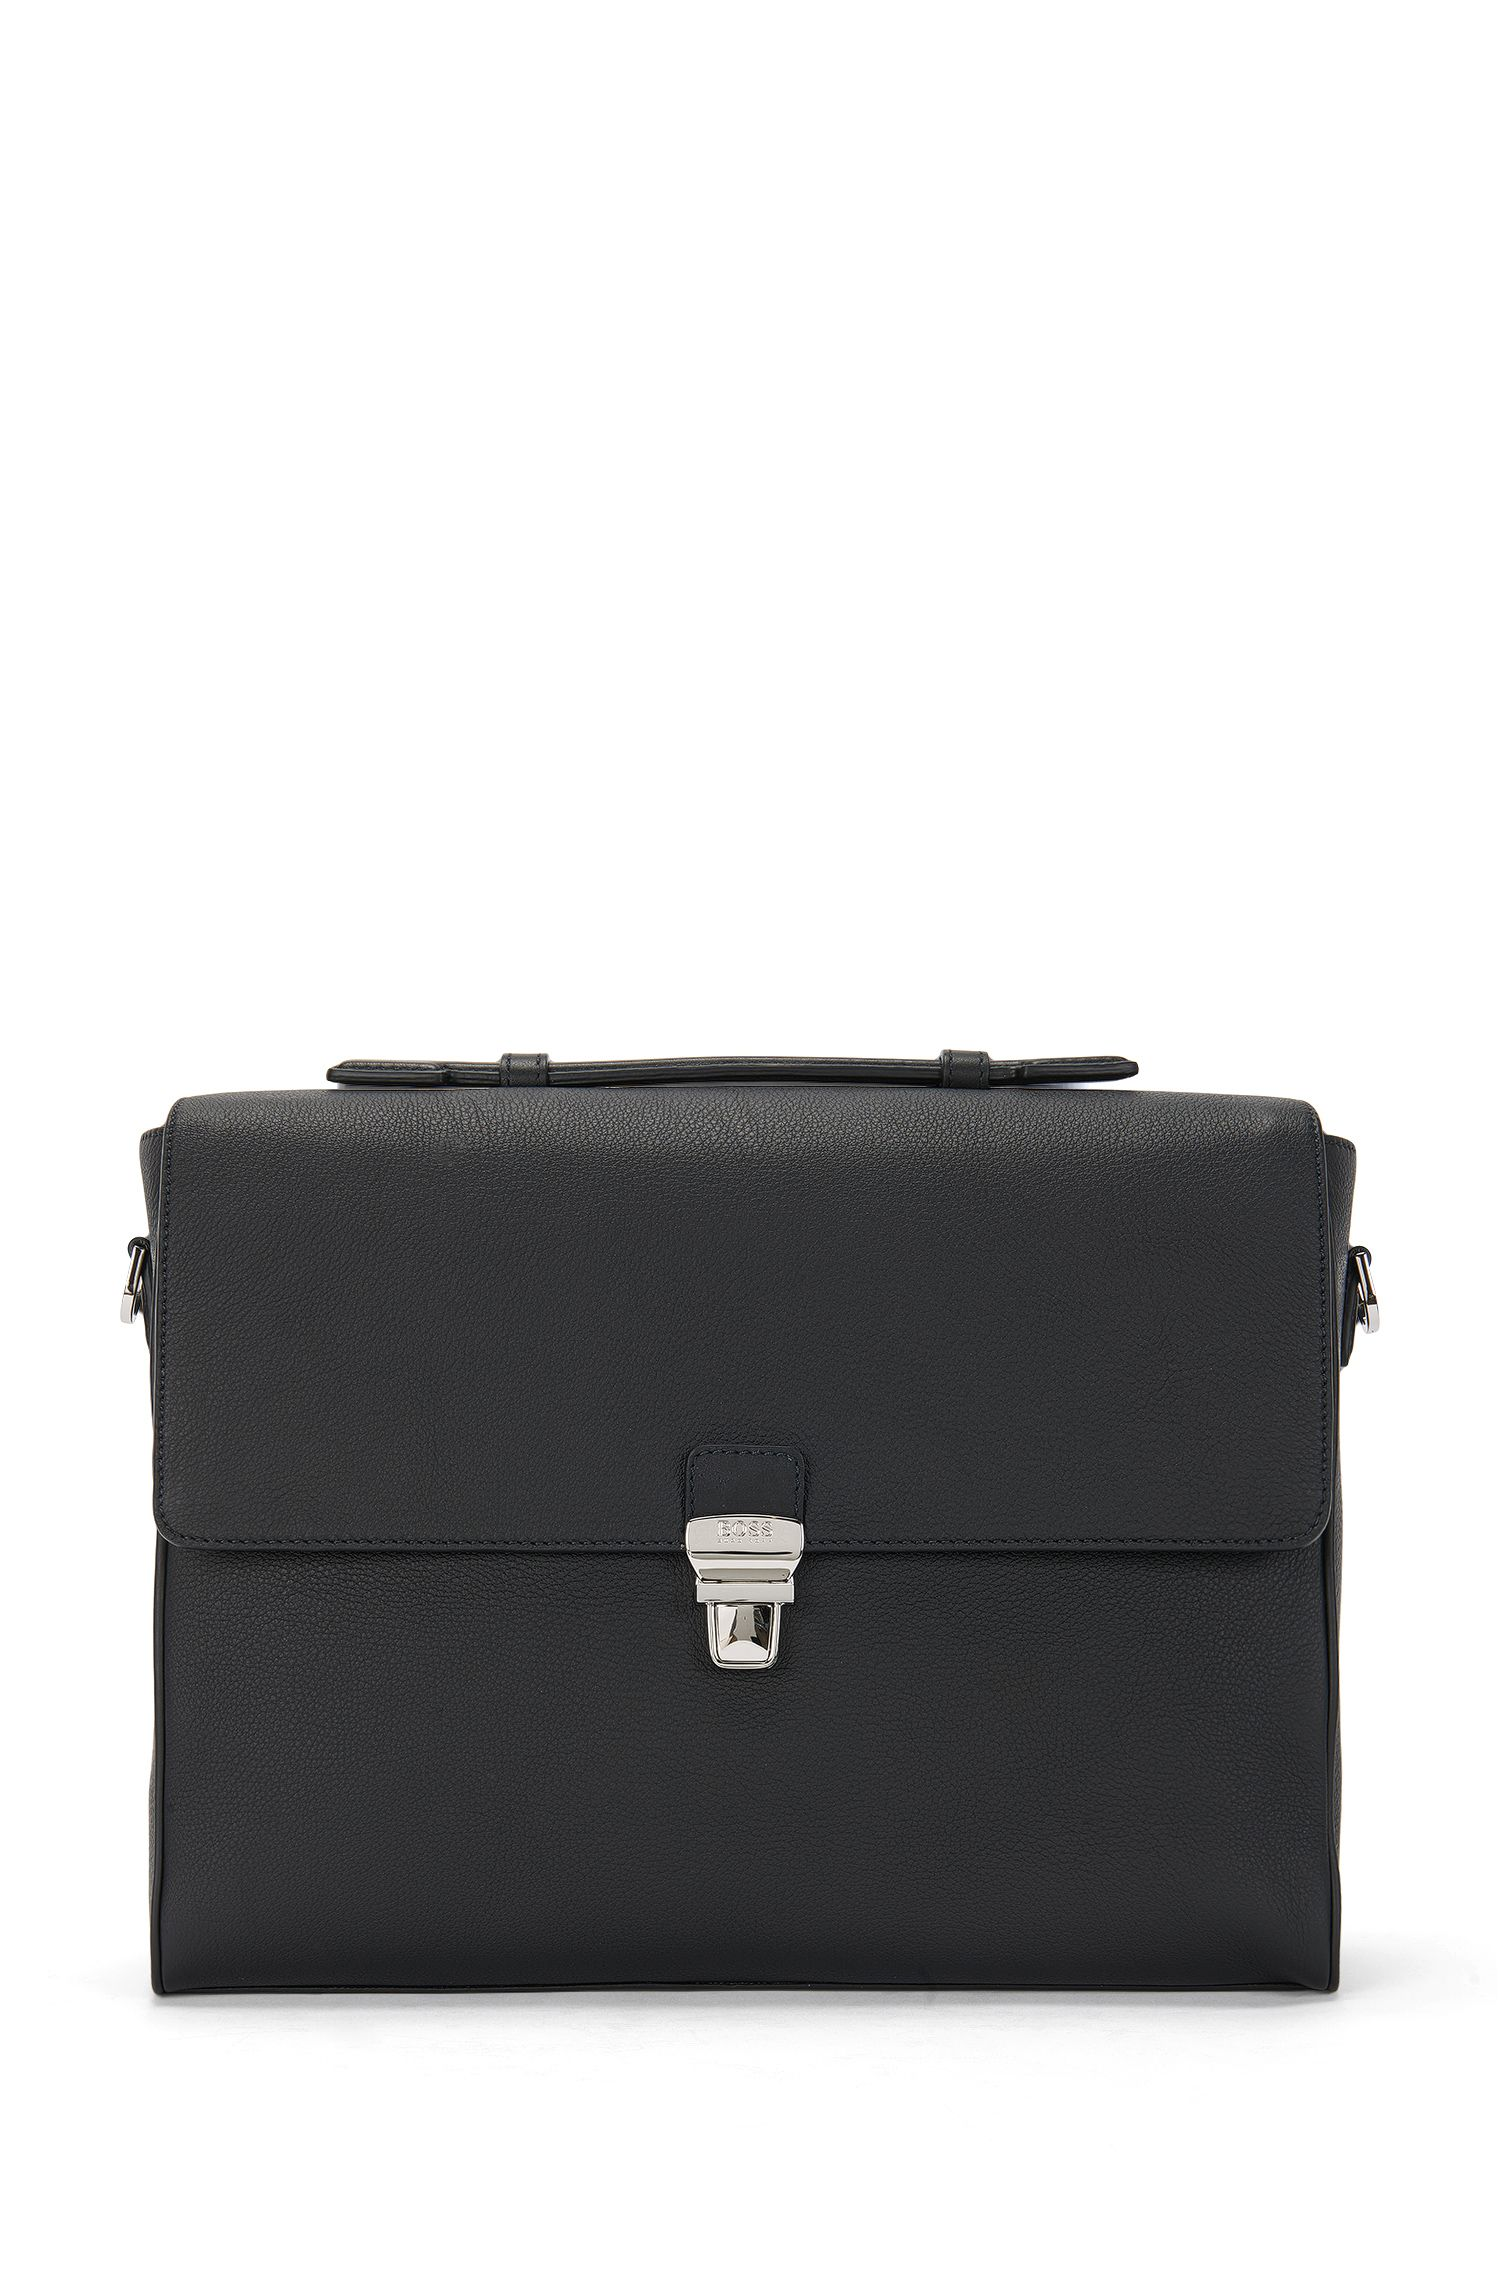 Document case in grained Italian leather